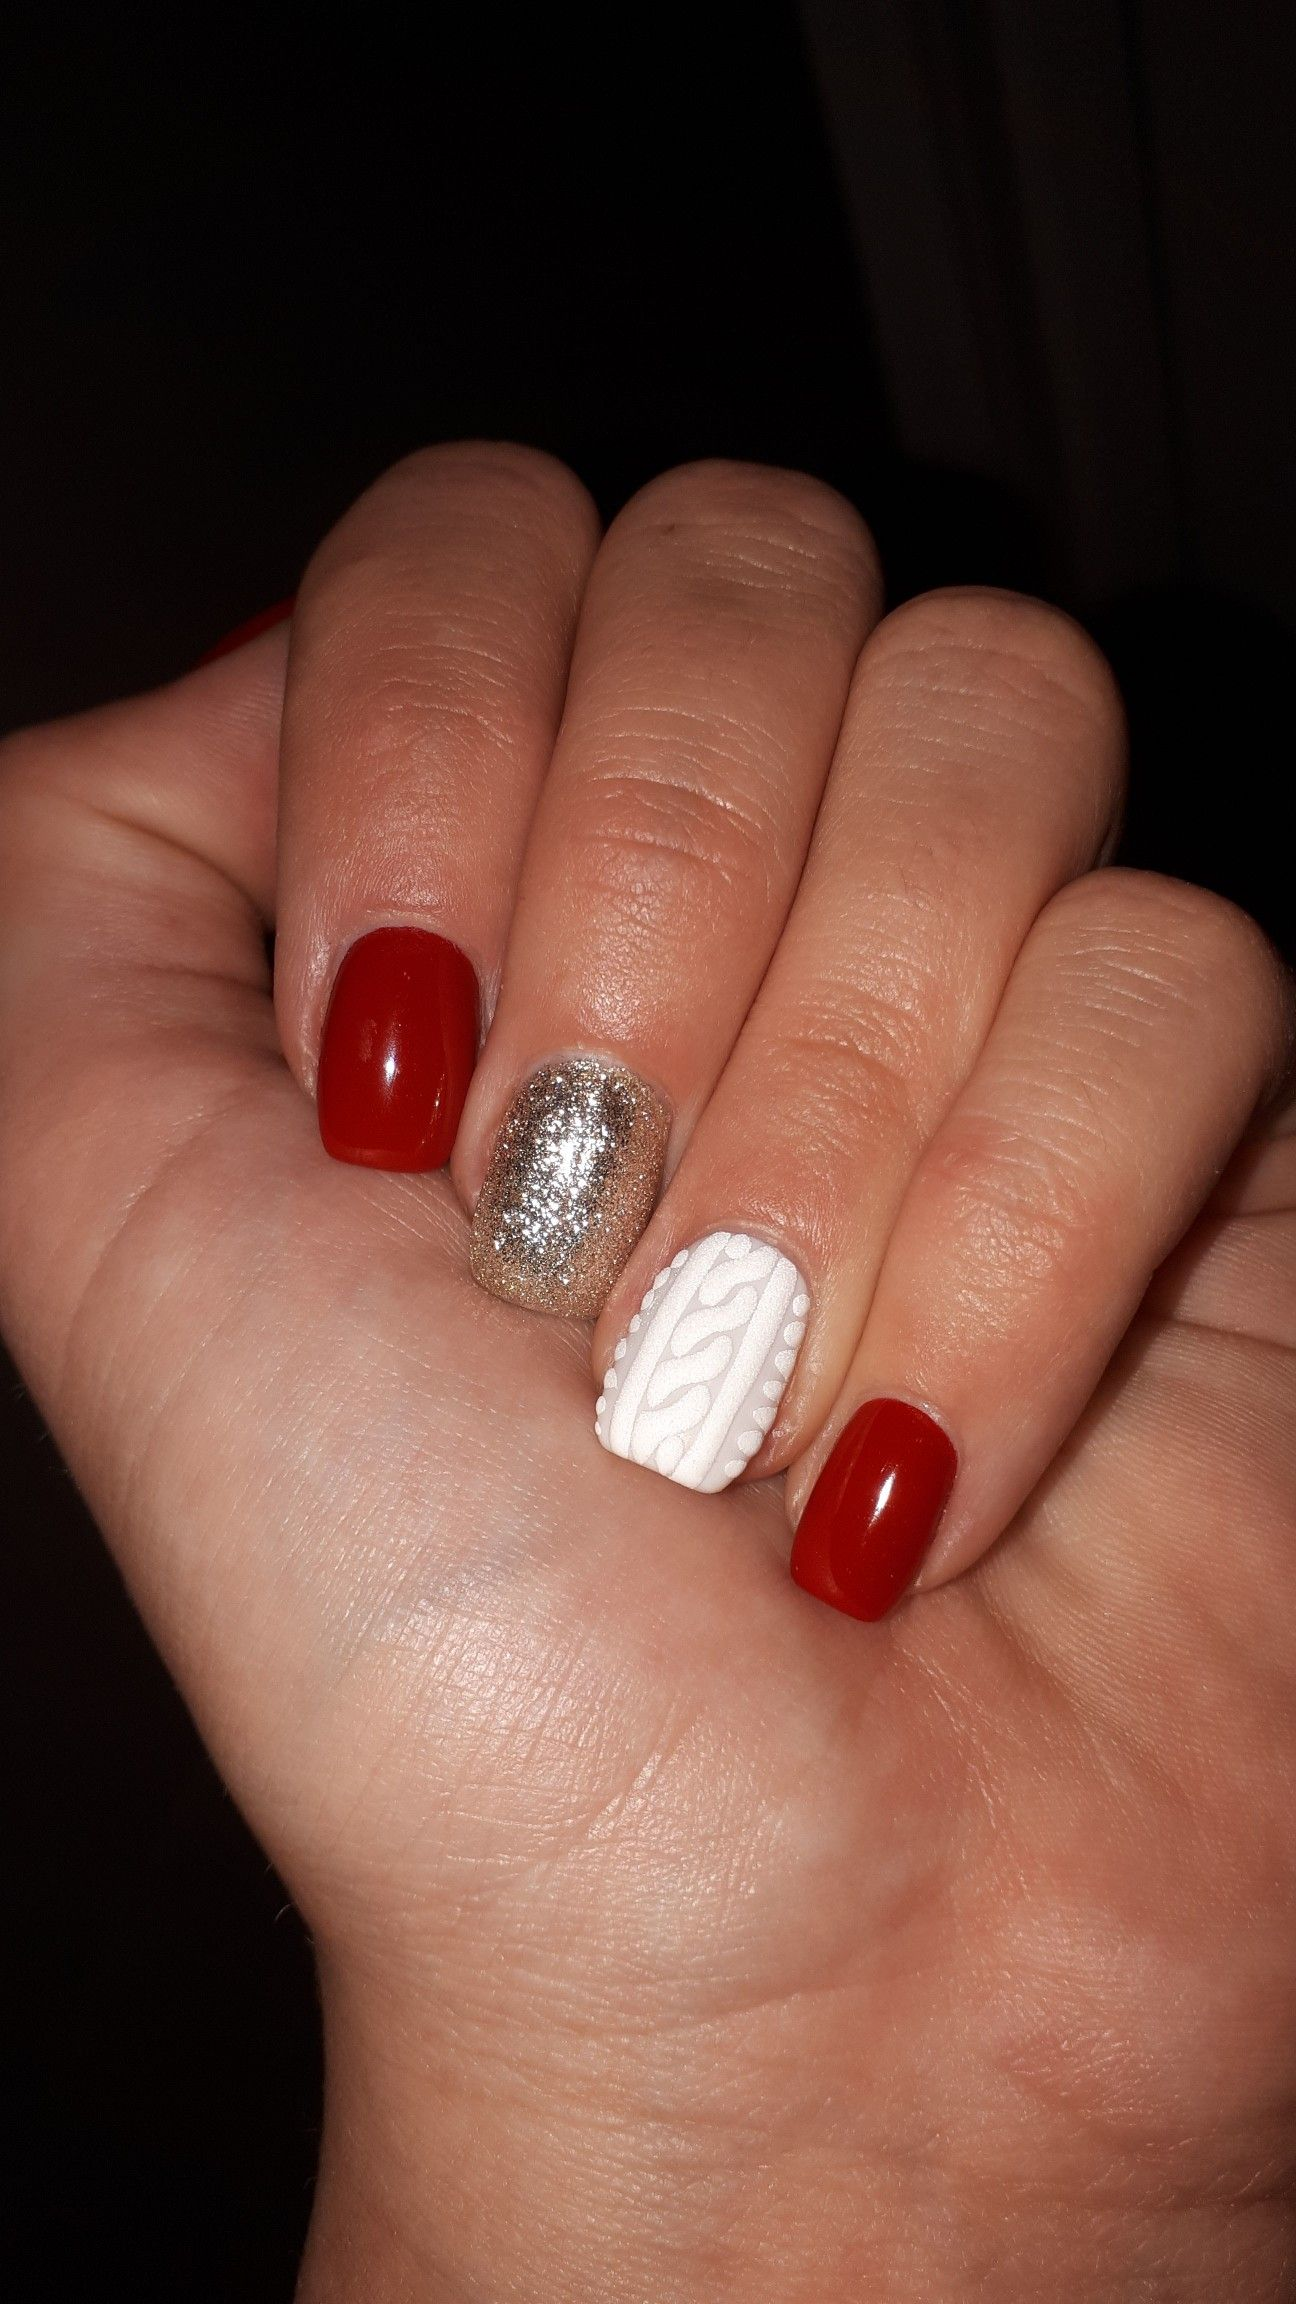 Pin By Chelsea Ryan On Cute Nails Pinterest